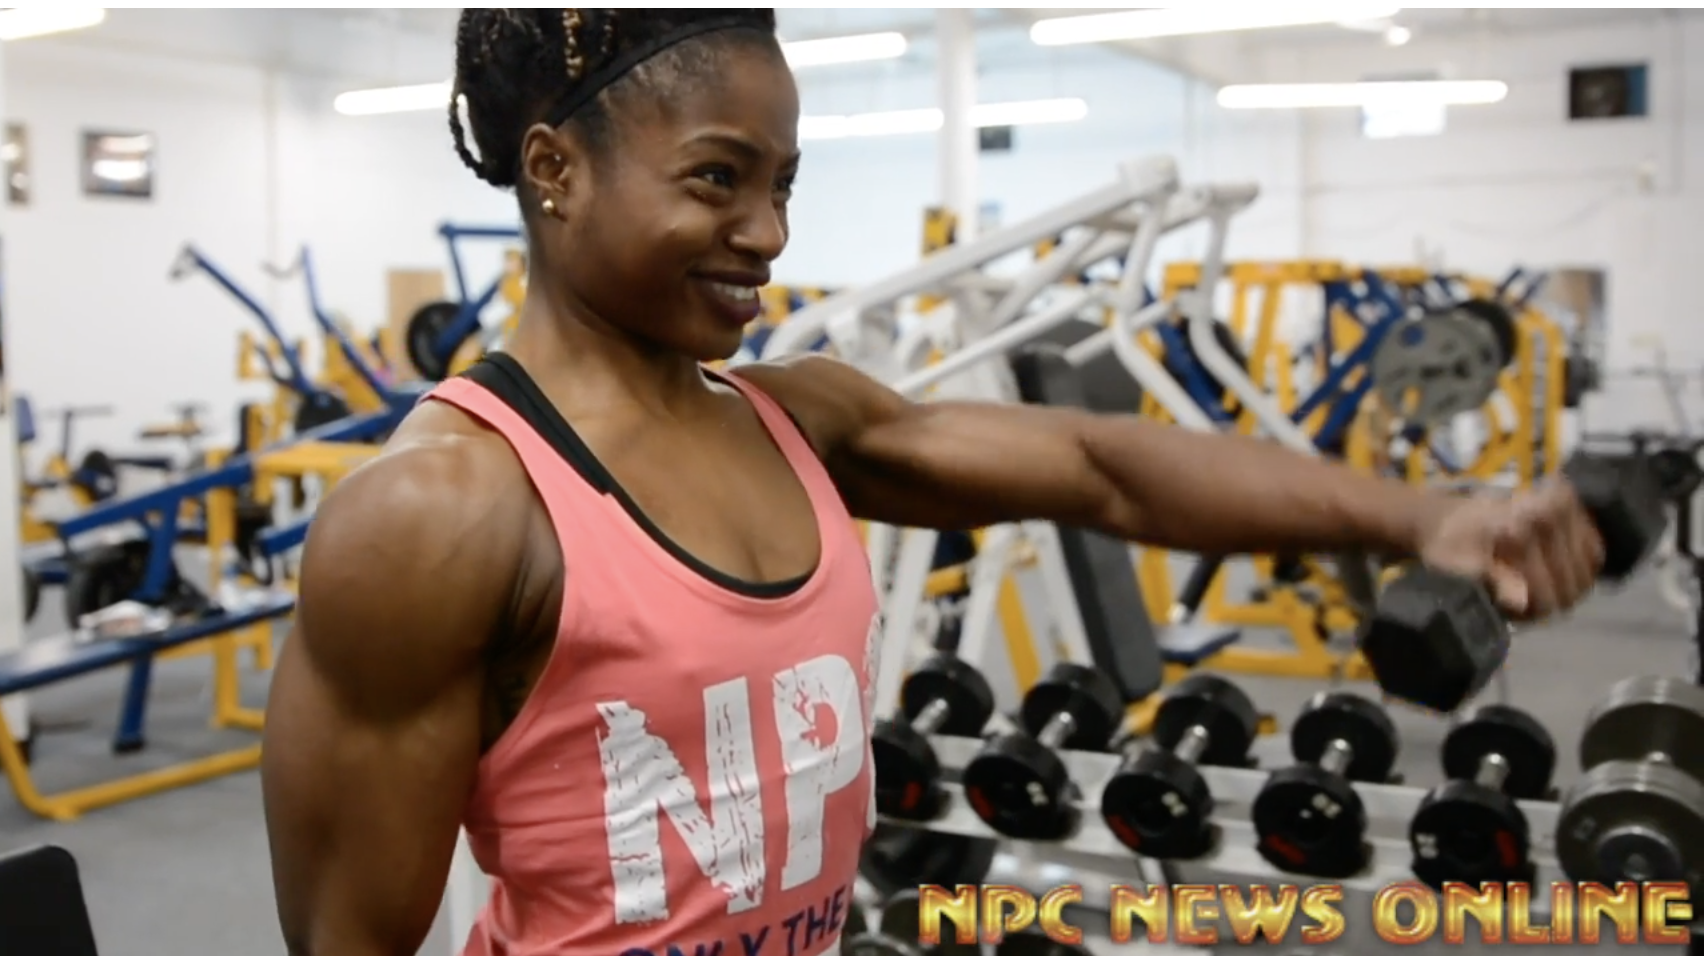 IFBB Figure Olympia Champ Cydney Gillon Shoulder Workout Video: Road to the 2018 Arnold.  Filmed By J.M. Manion At The NPC Photo Gym.